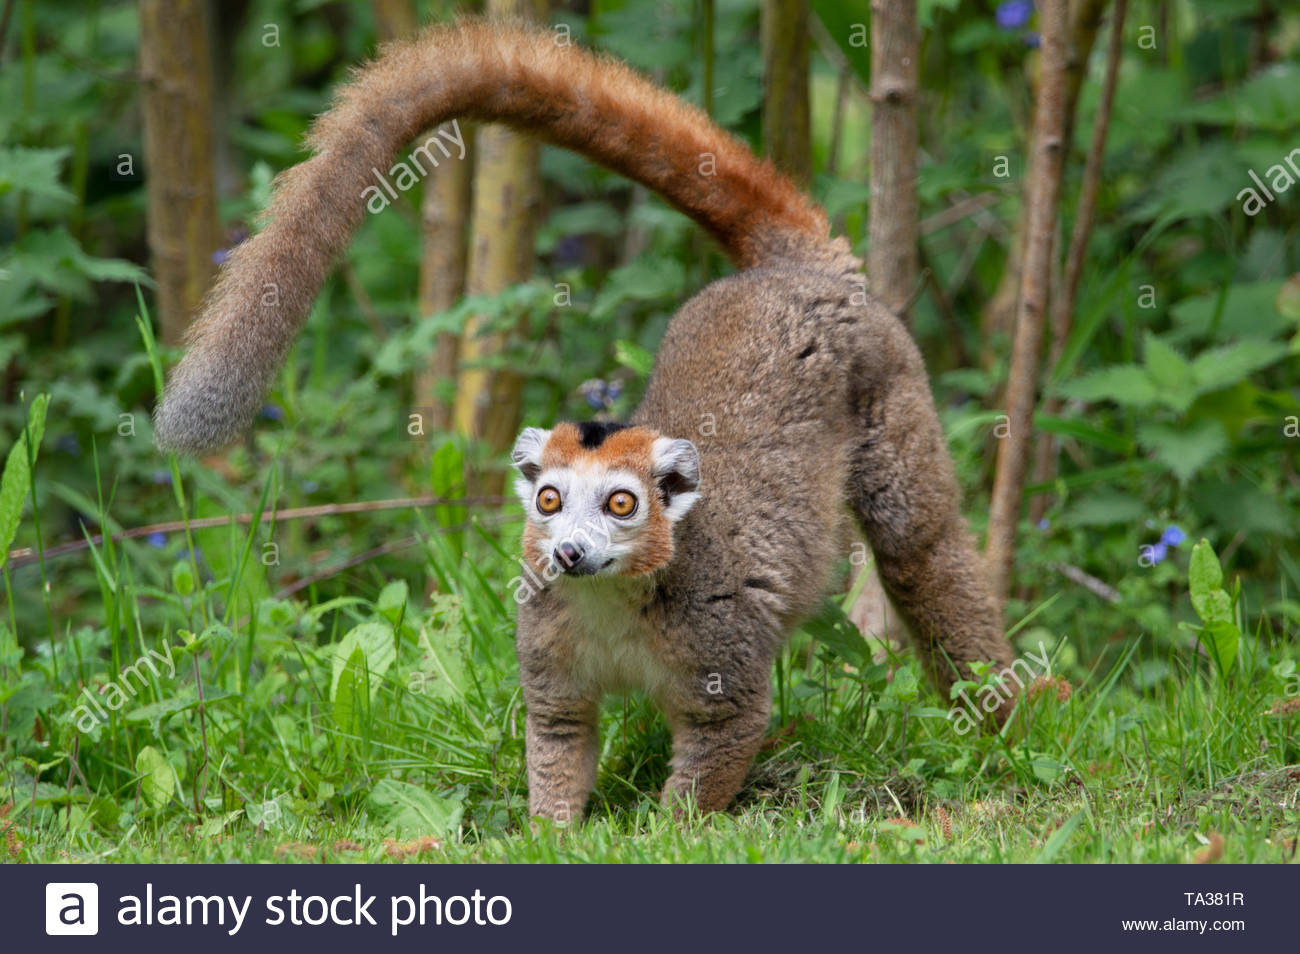 Wide-eyed crowned lemur - Stock Image